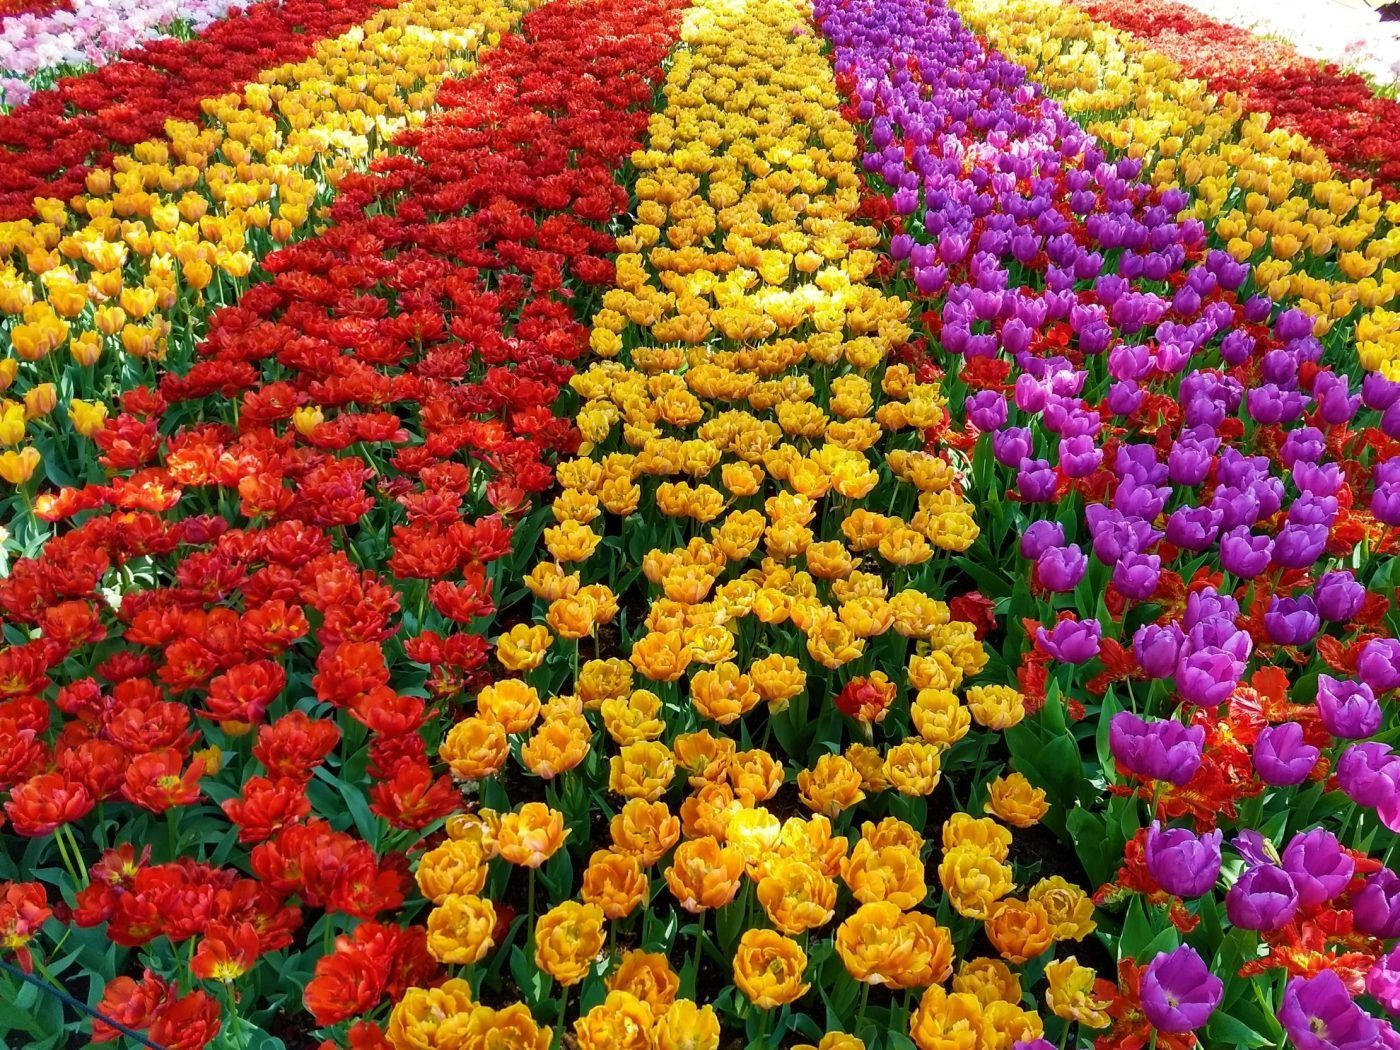 Tulip Fields In The Netherlands When Where 2020 In 2020